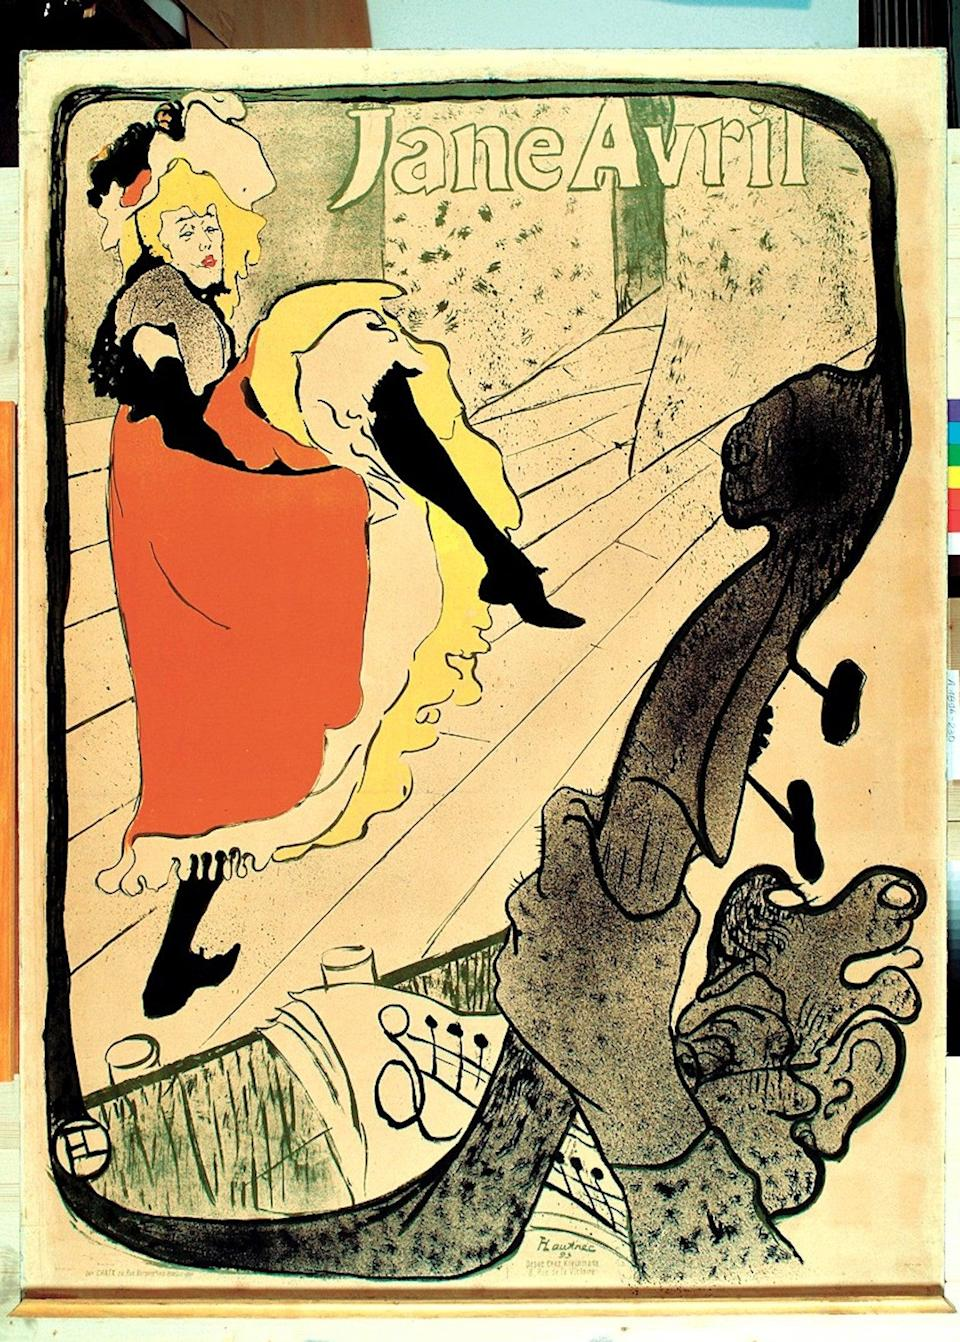 Jane Avril featured heavily in Henri de Toulouse-Lautrec's graphic posters (The Met Museum)